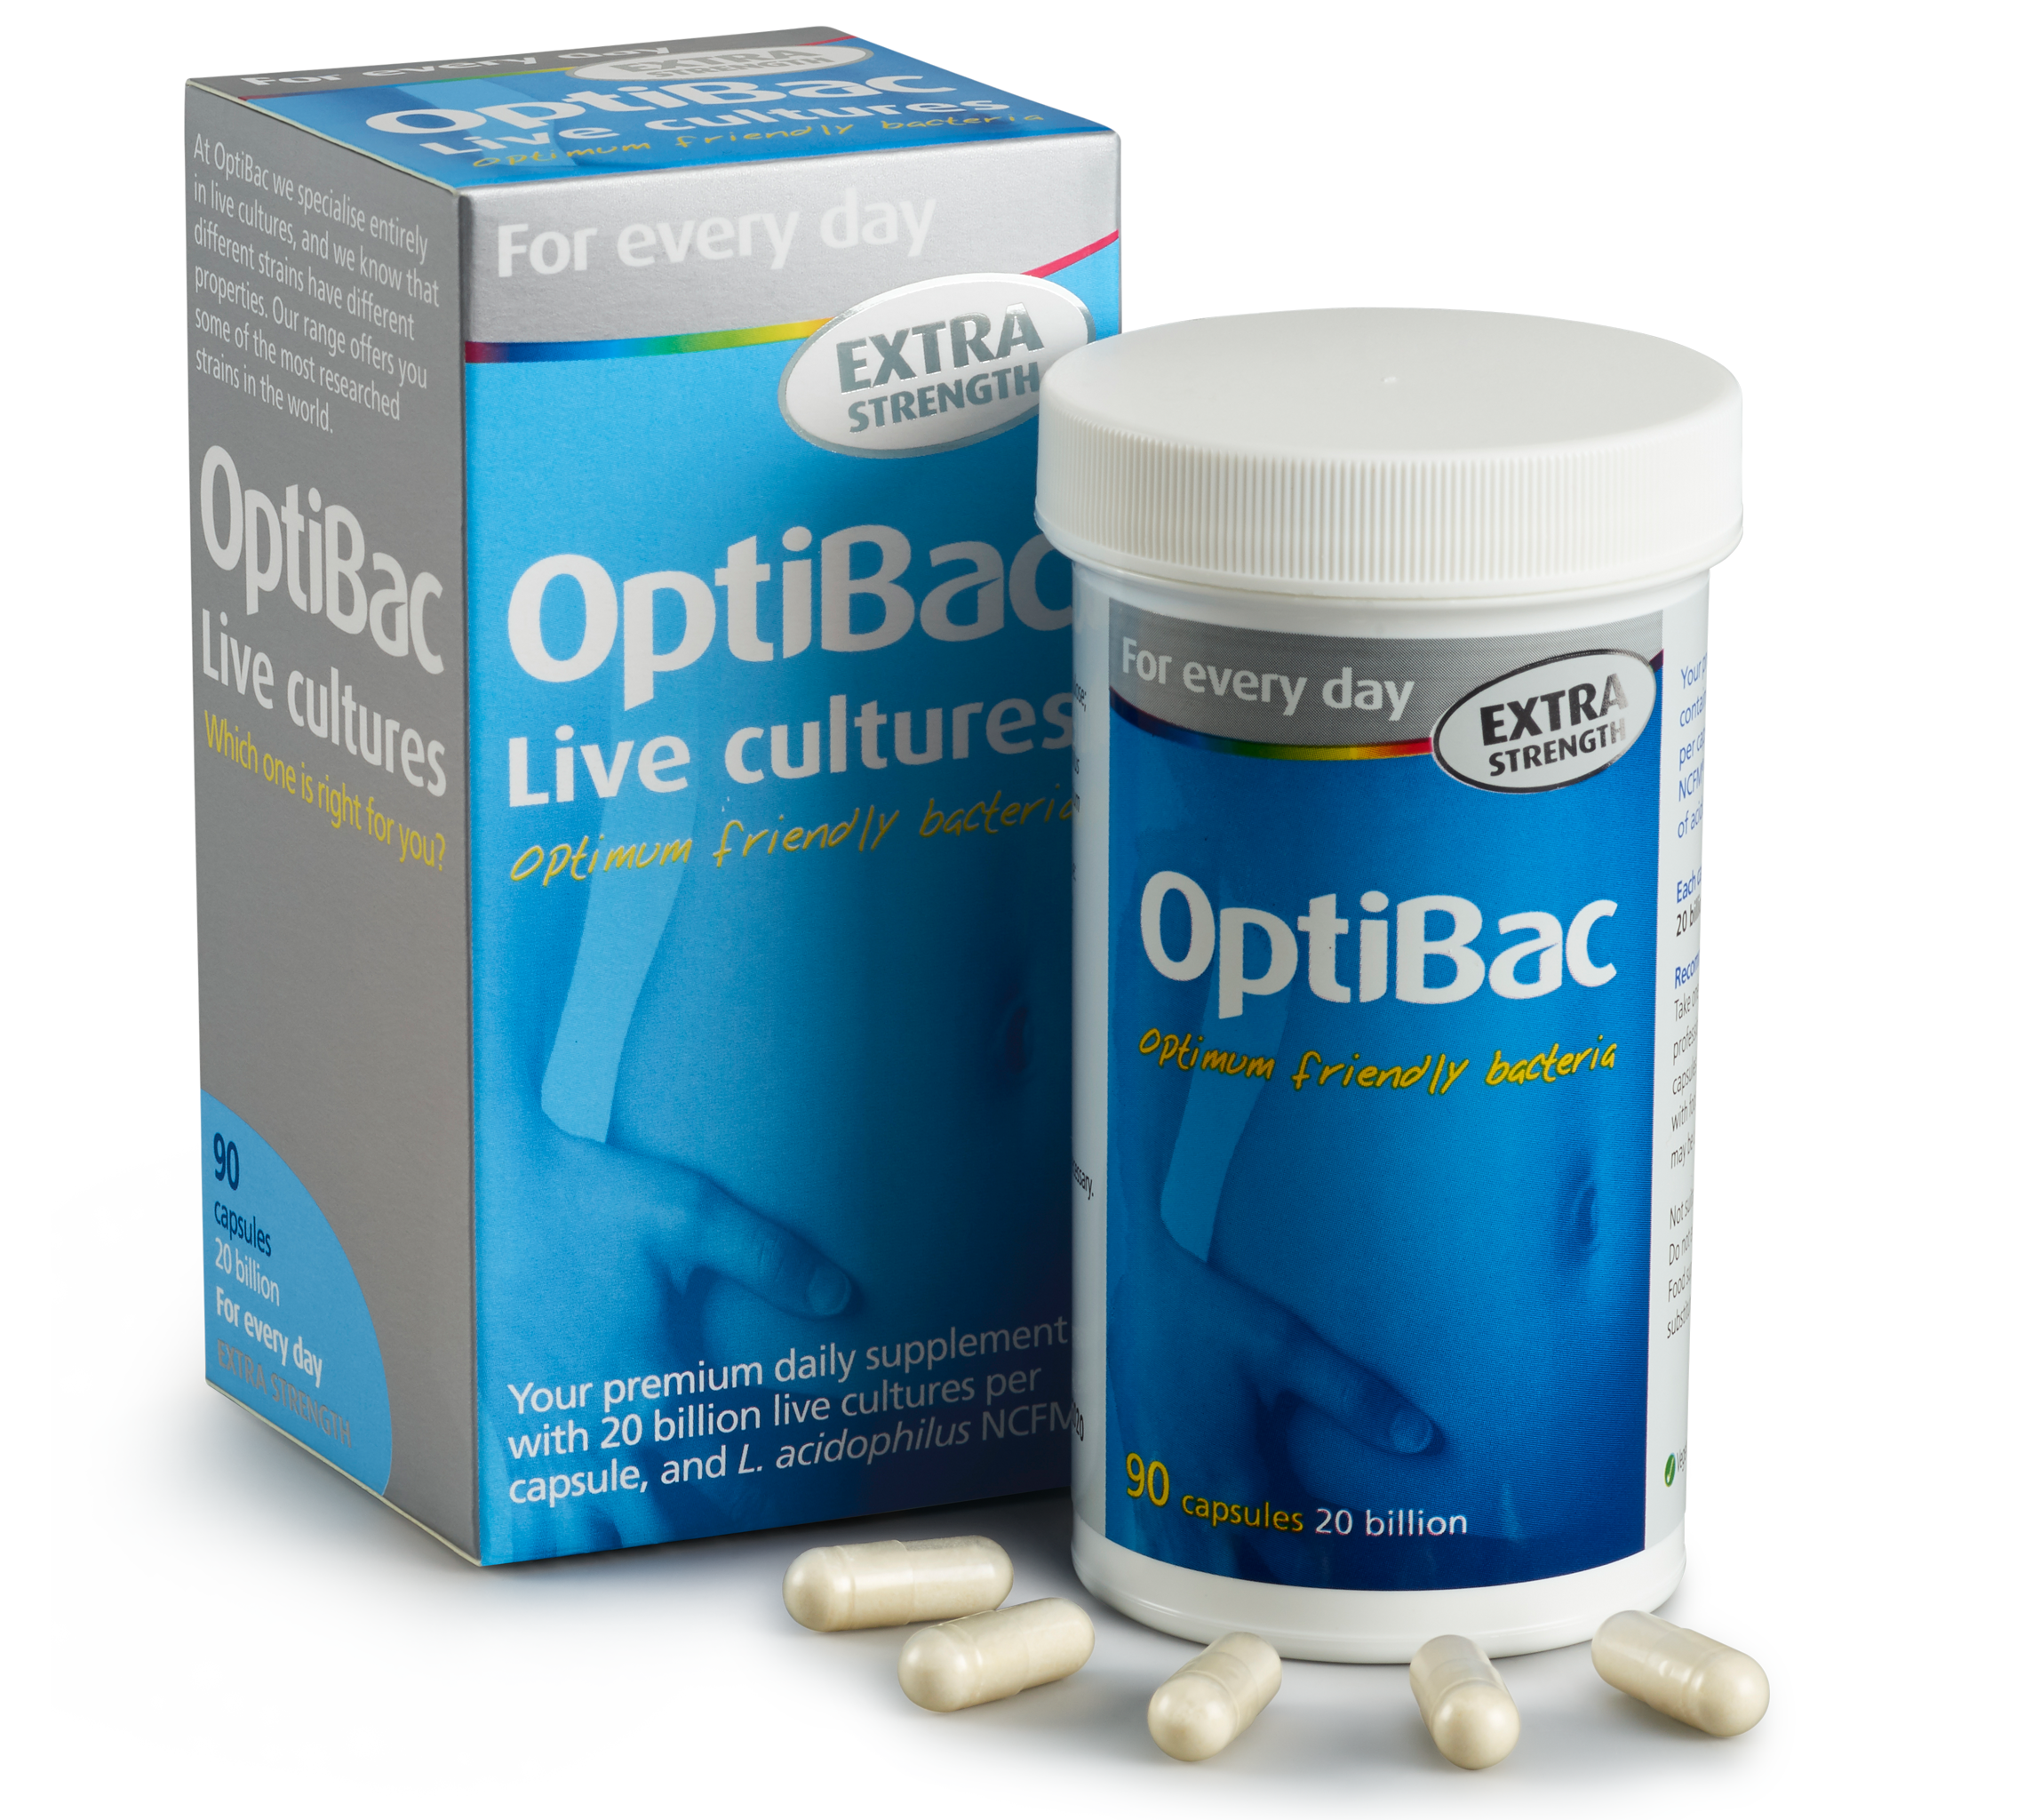 Optibac - For every day EXTRA Strength 30caps